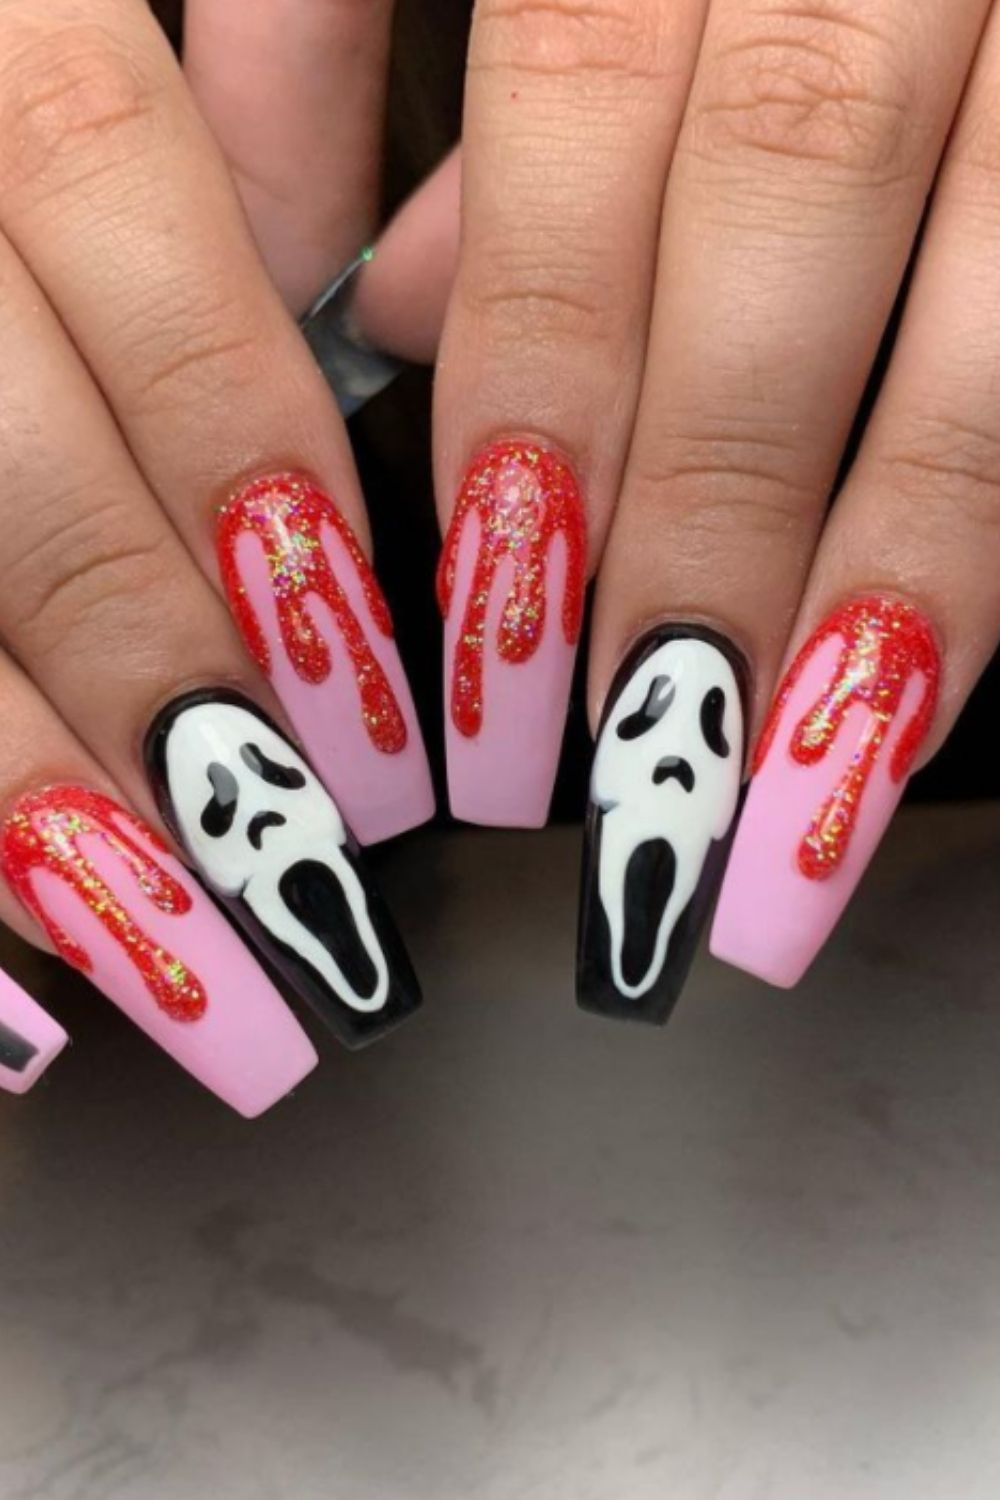 Bloody Nail Designs – With Blood Drops, Wounds, Knives